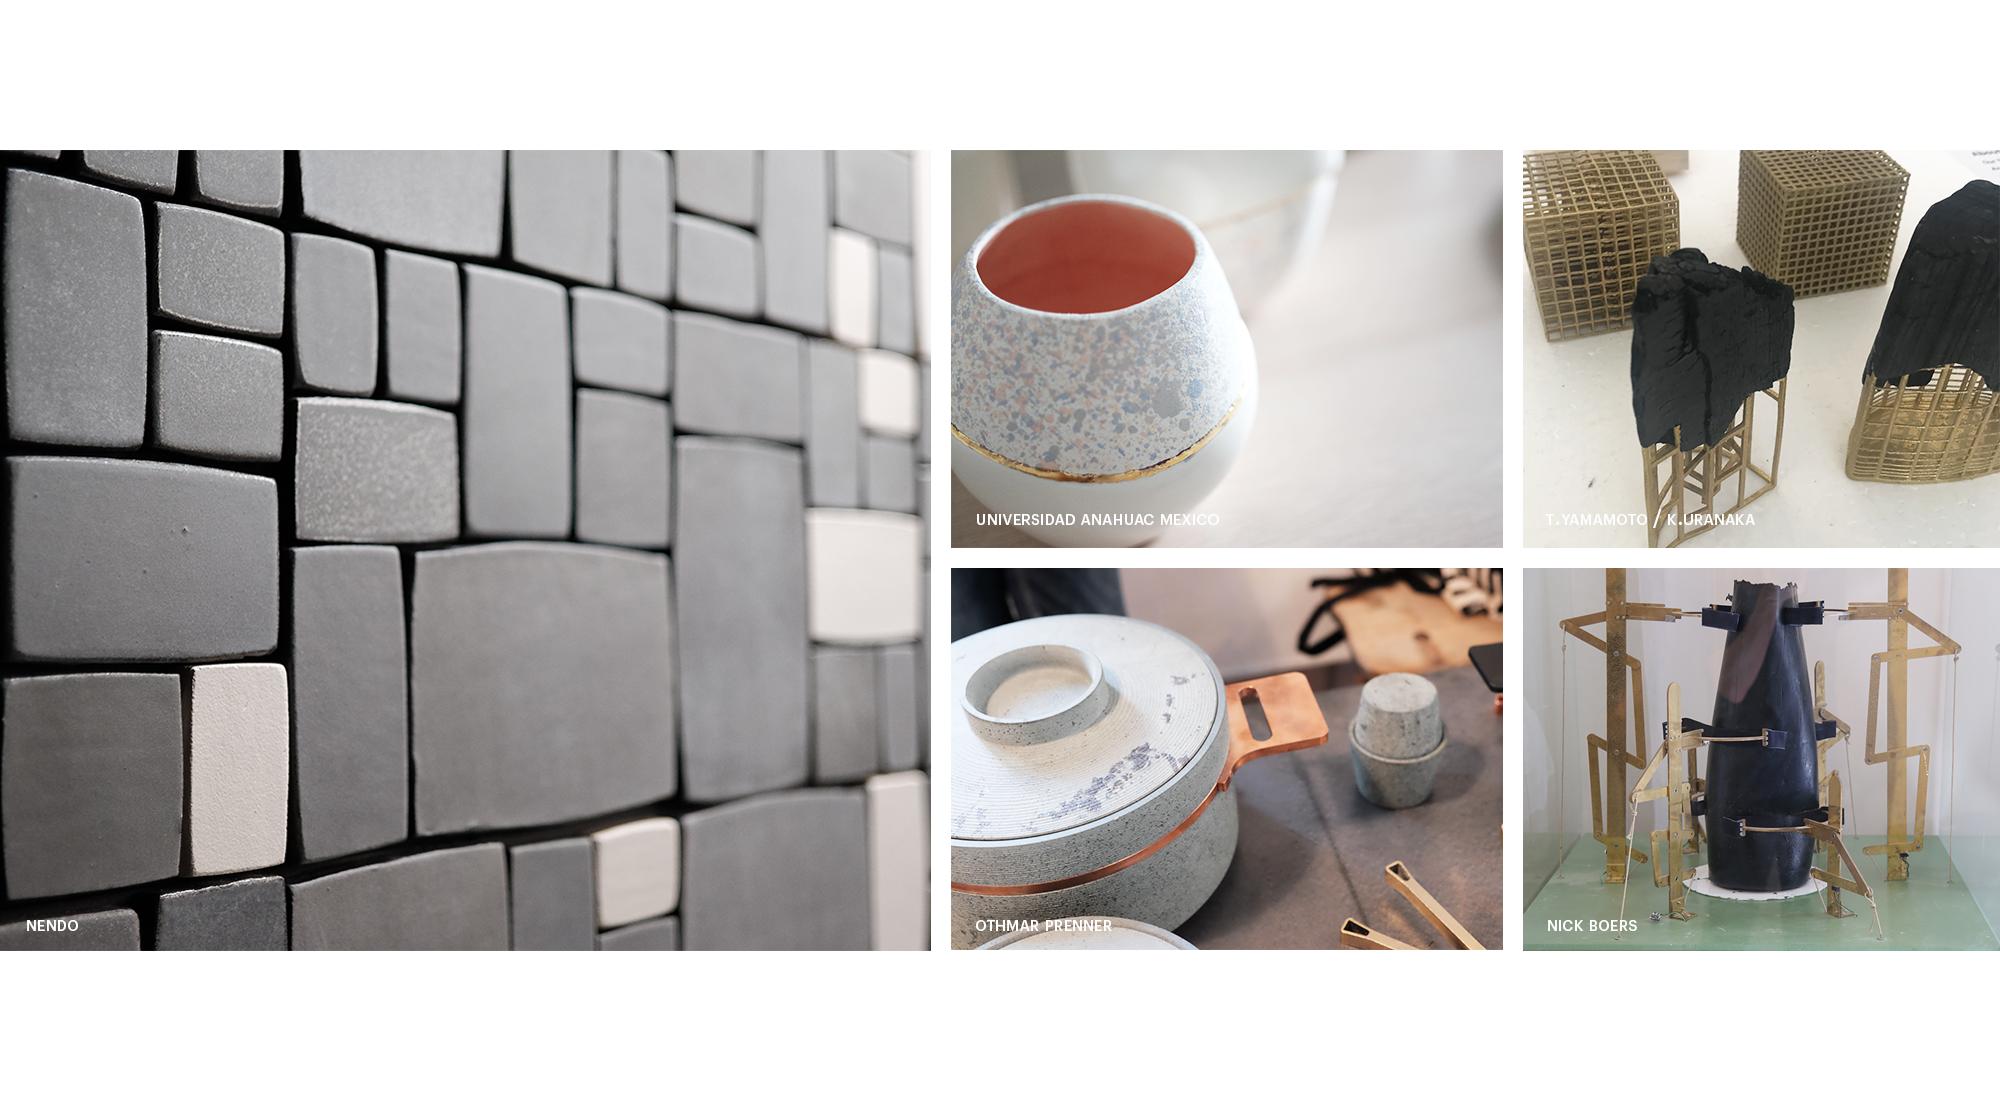 Image Collage Milan Design Week 2018 including tiles, cookware, cup, basket, wood, leather, fabric